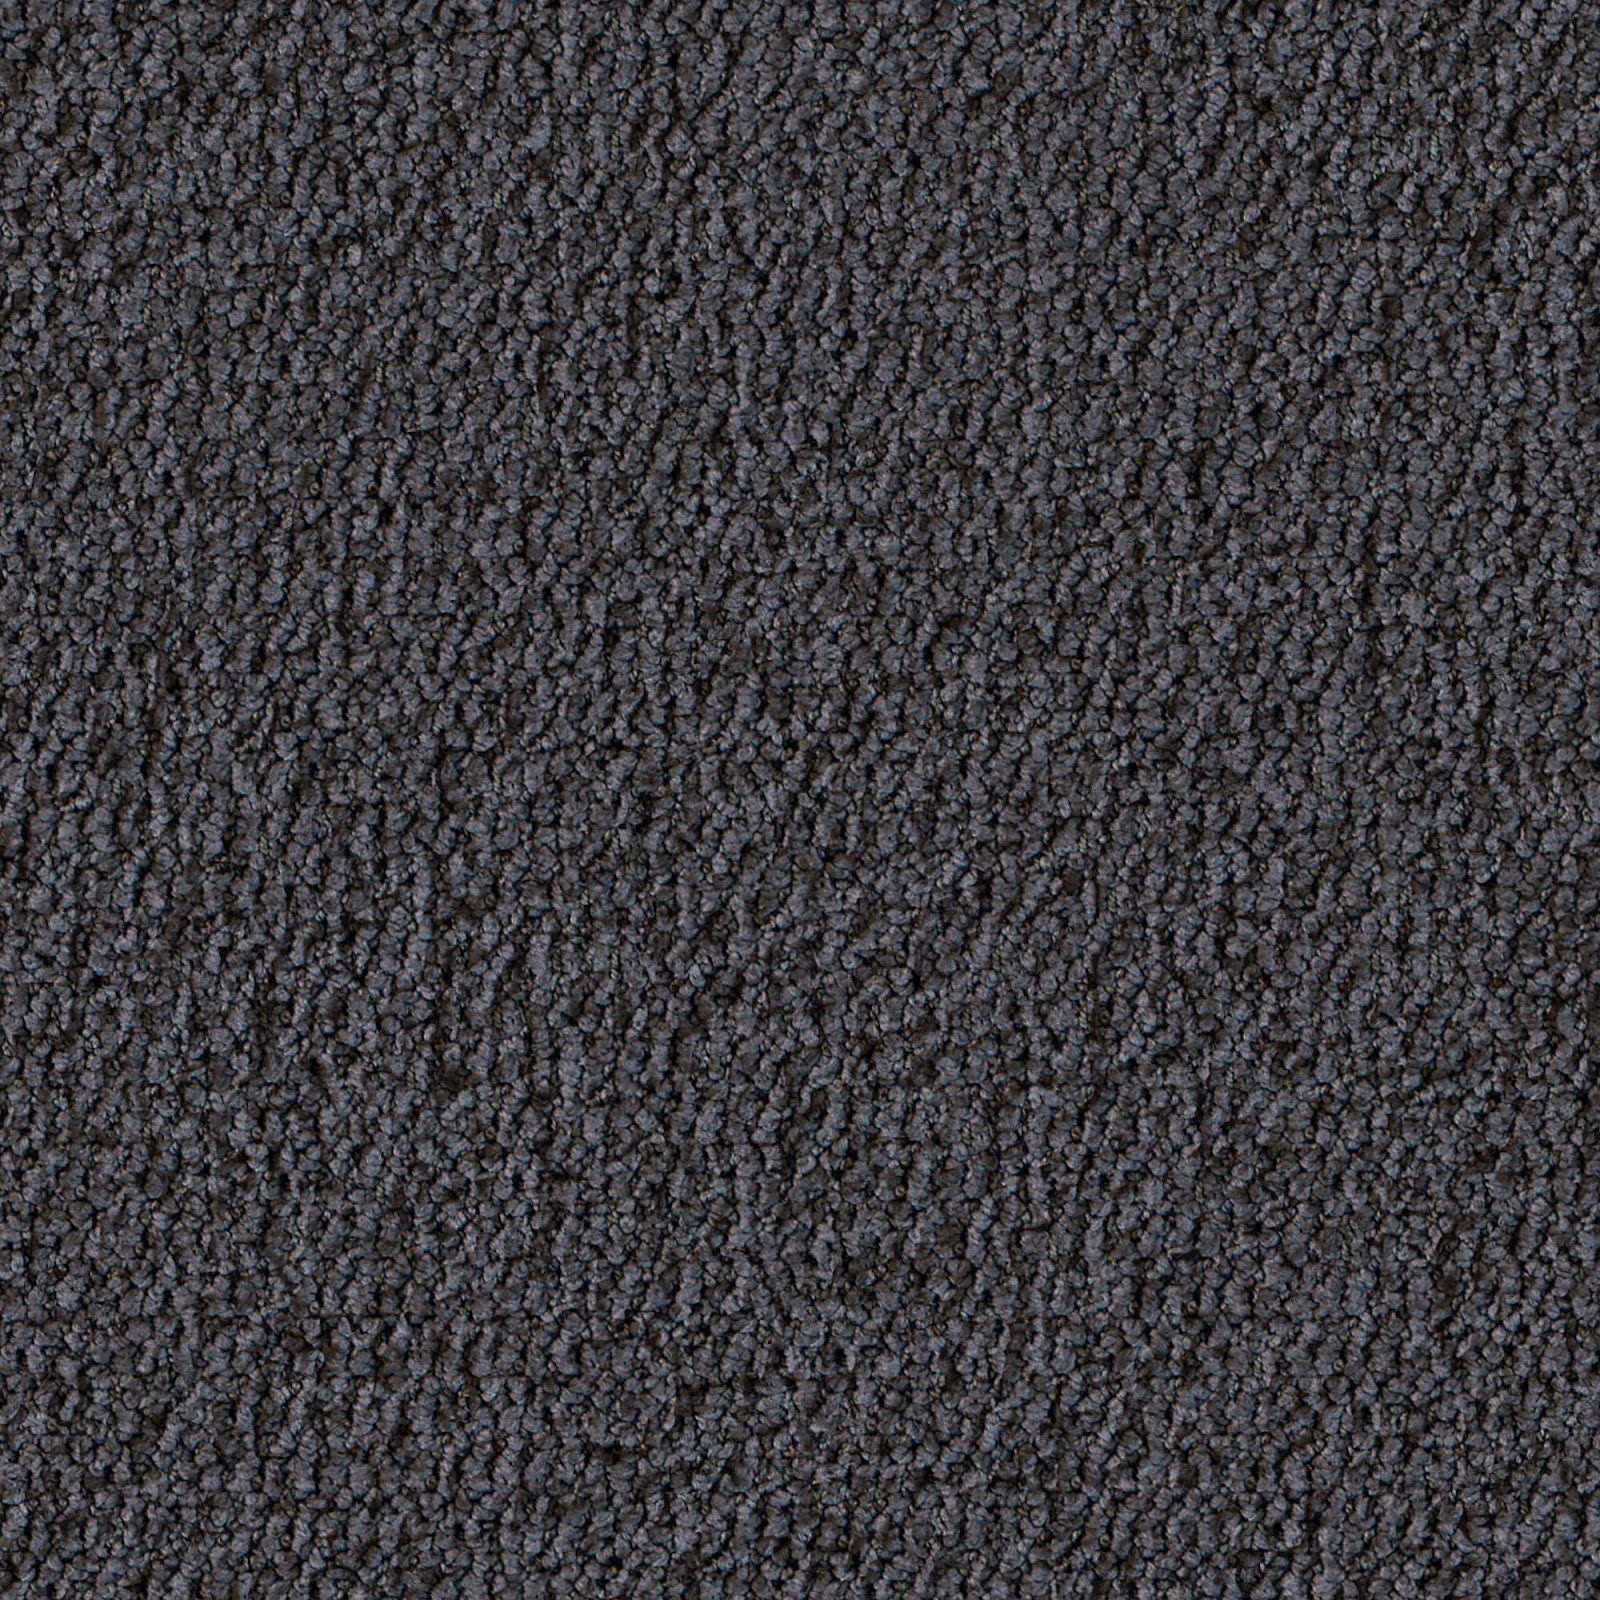 Dark Carpet Texture